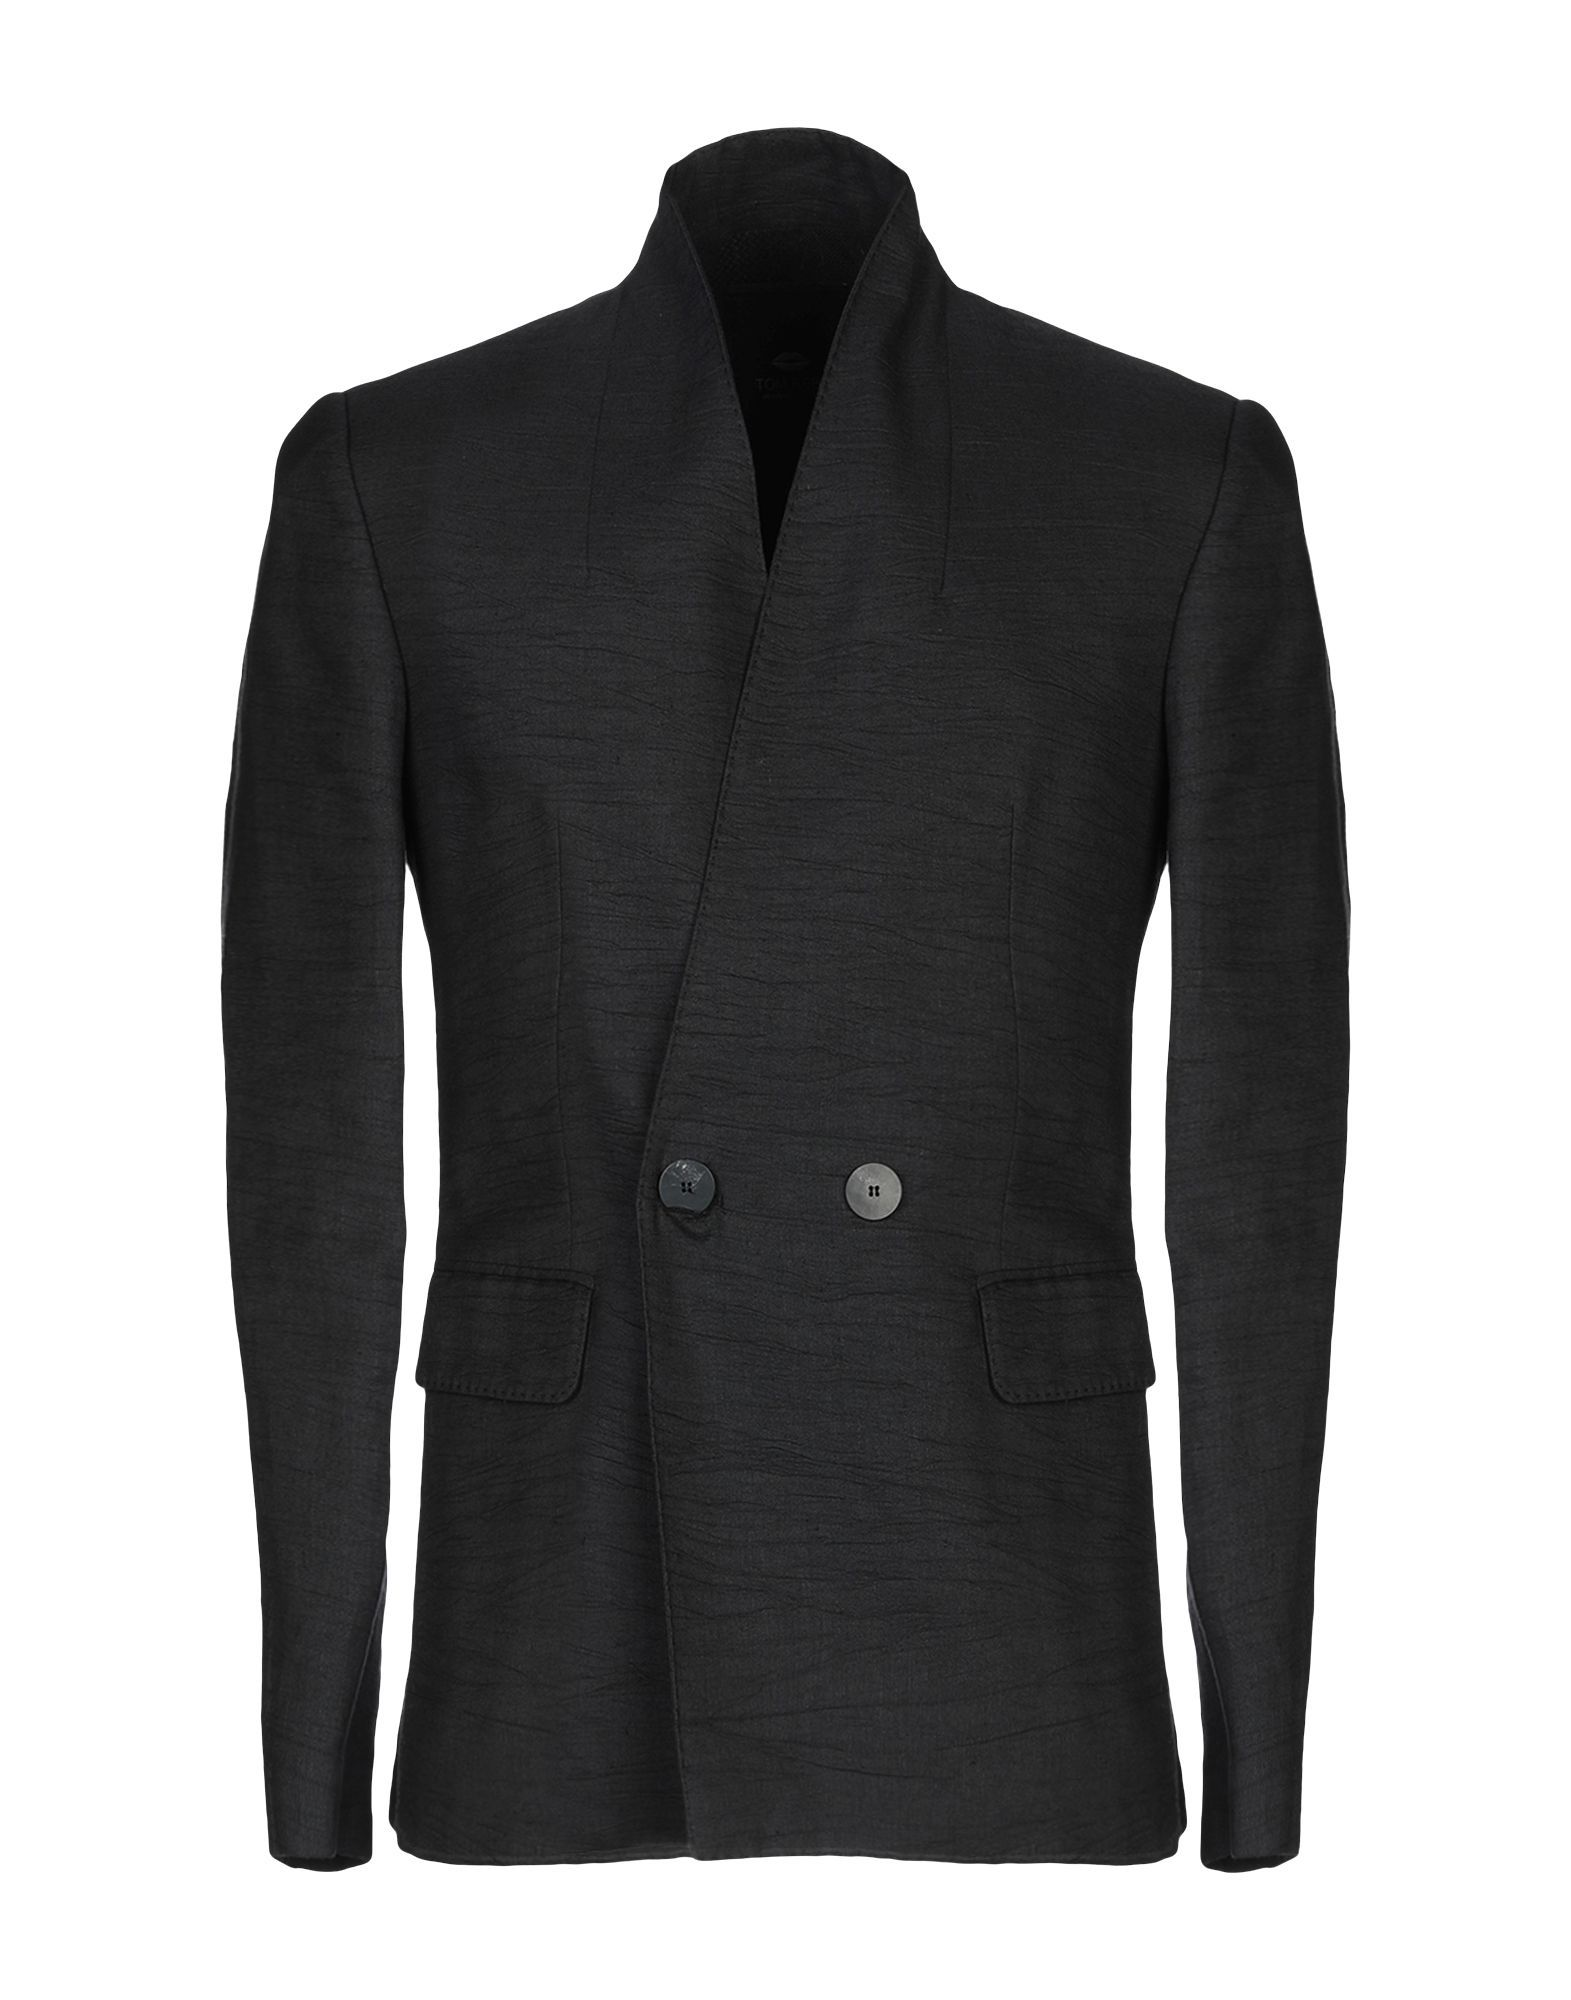 SUITS AND JACKETS Tom Rebl Black Man Cotton